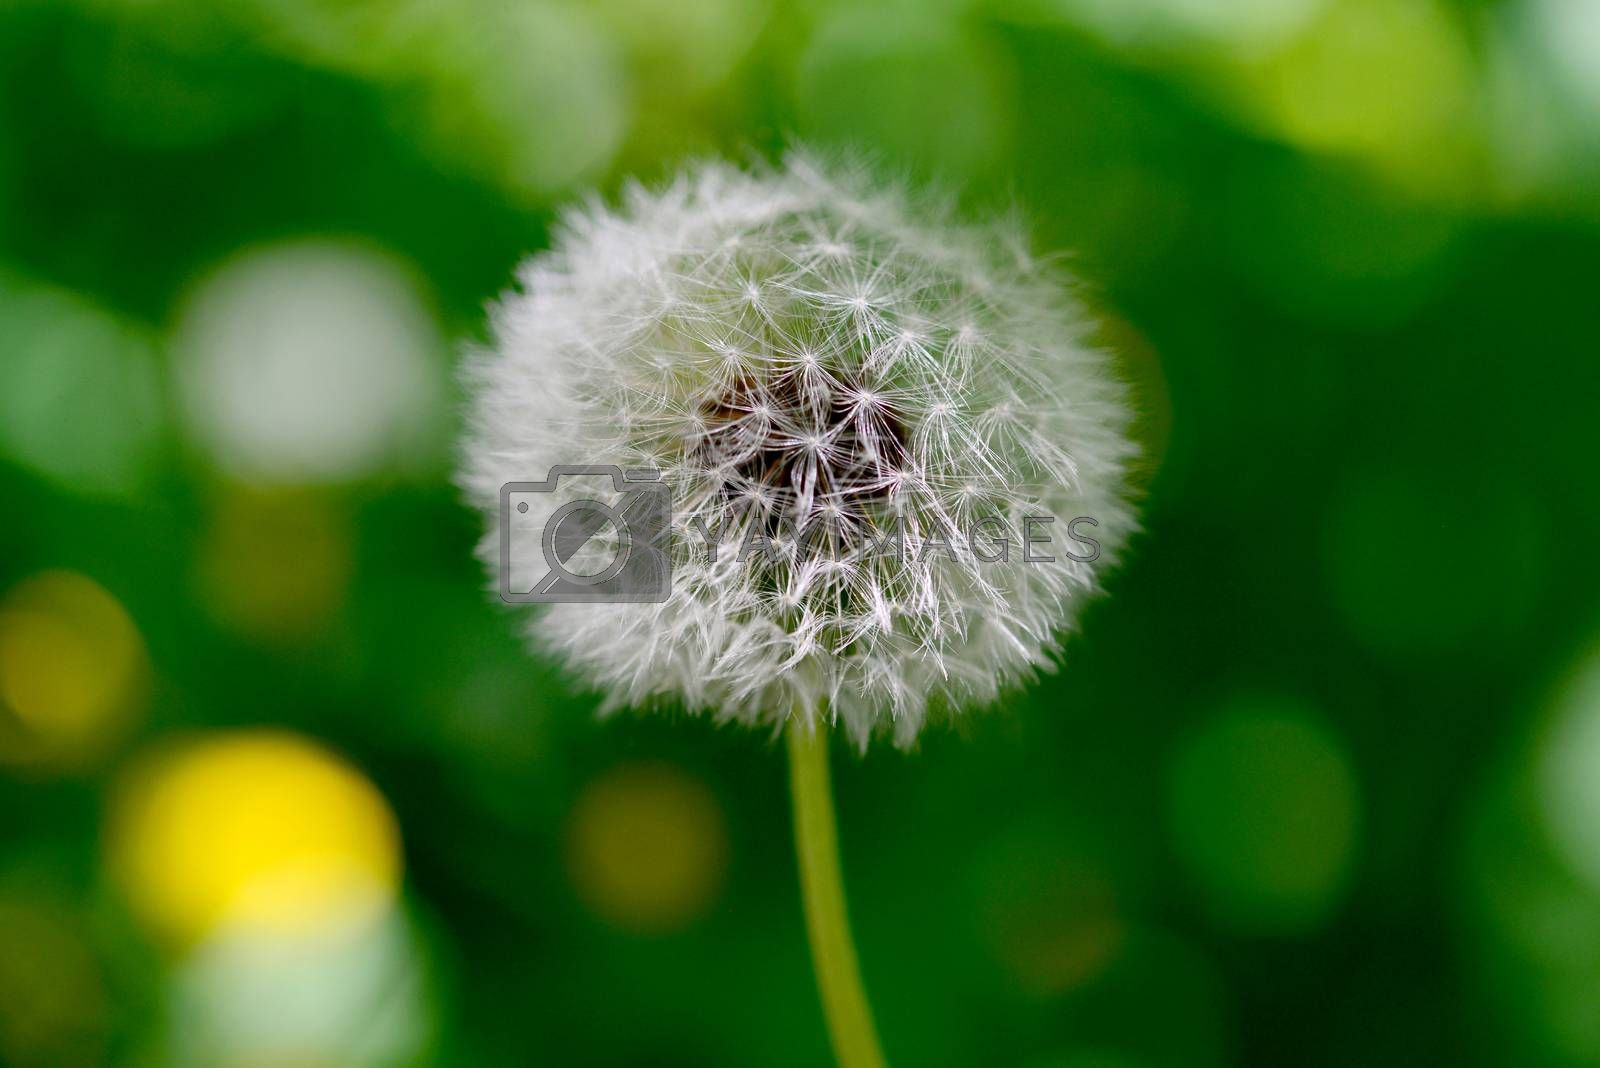 dandelion plant close detail with green natural background